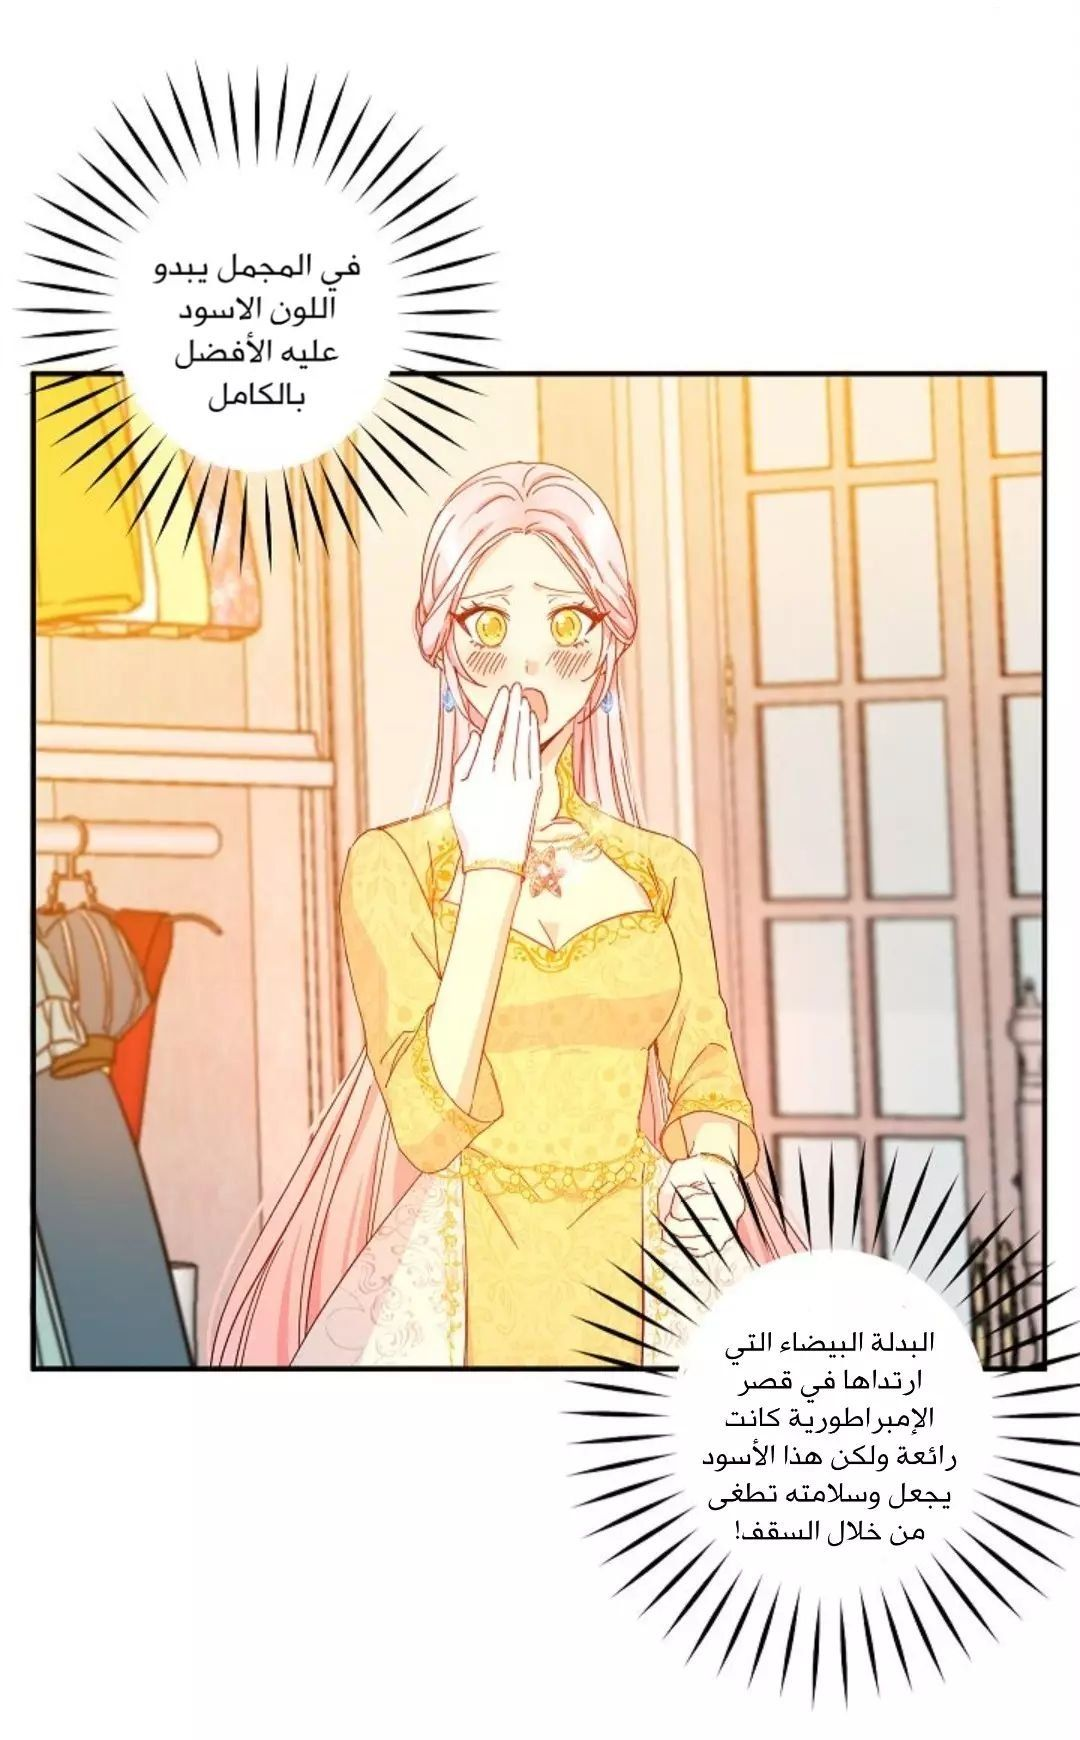 This Is An Obvious Fraudulent Marriage هذا زواج محتال واضح Aesthetic Wallpapers Character Wallpaper